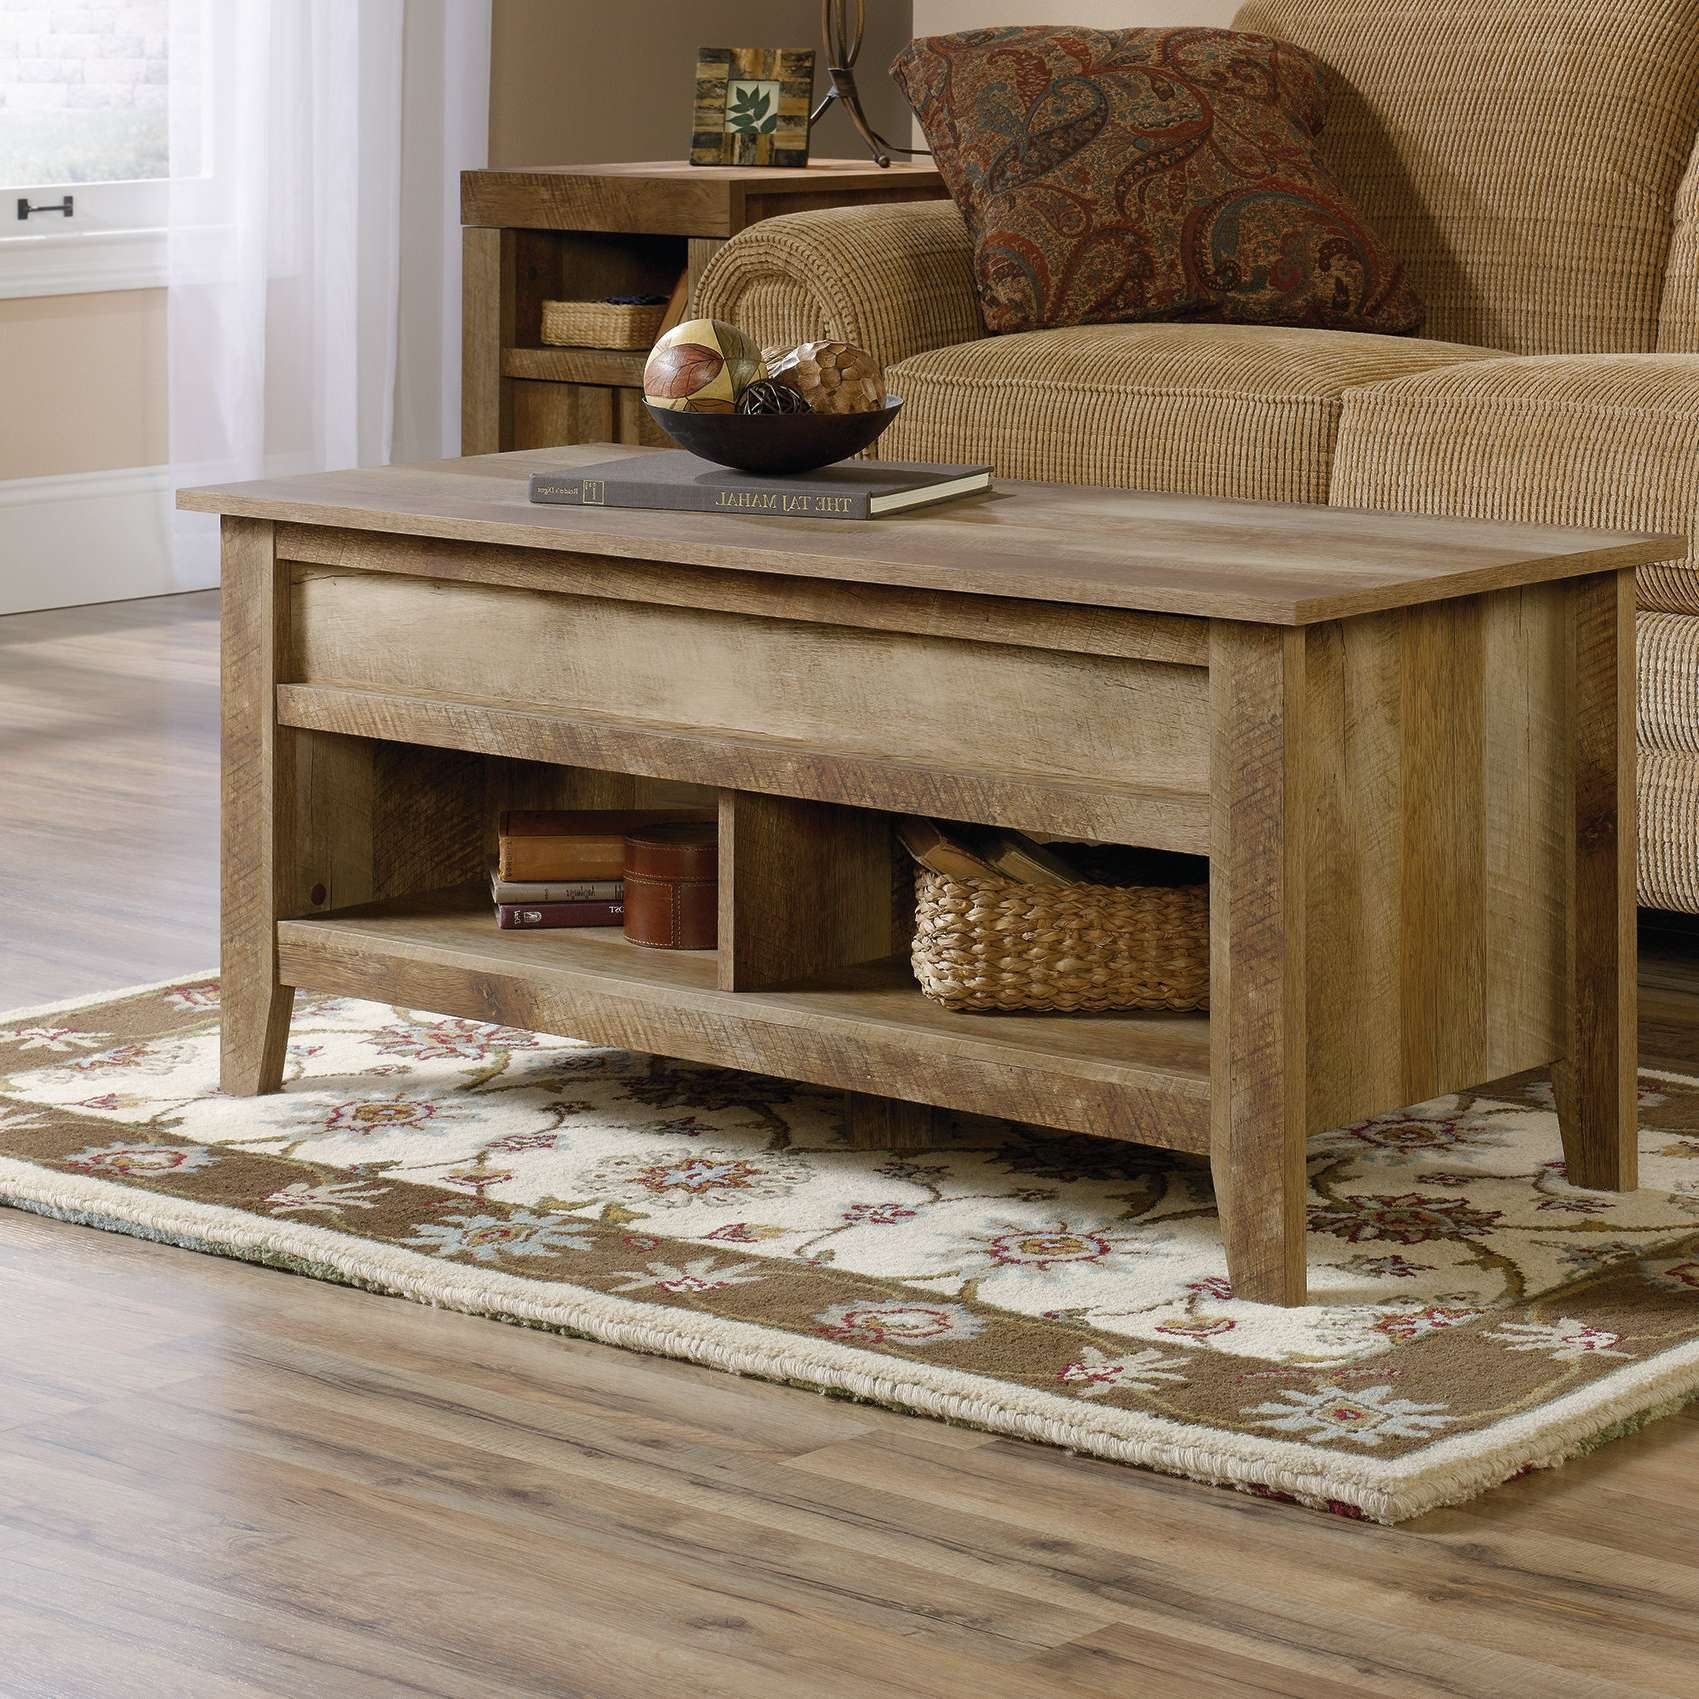 Lift Top Coffee Tables You'll Love (View 10 of 20)